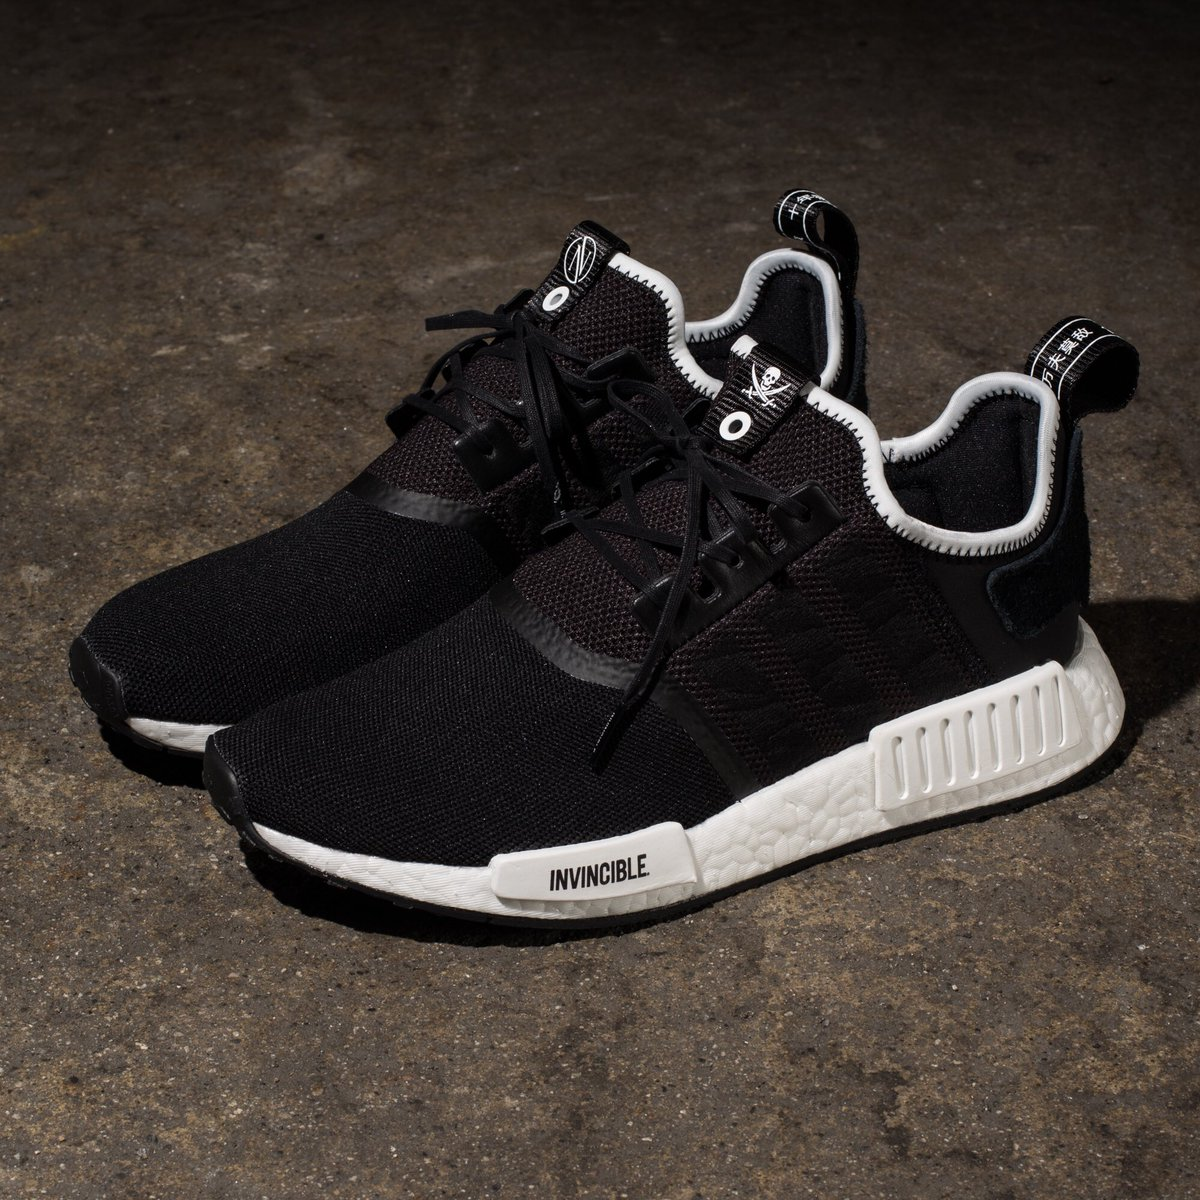 5b5d8d6e6 adidas Consortium x Invincible x Neighborhood NMD R1    Available Friday  12 29 at All Undefeated Chapter Stores and http   Undefeated.com pic.twitter.com   ...